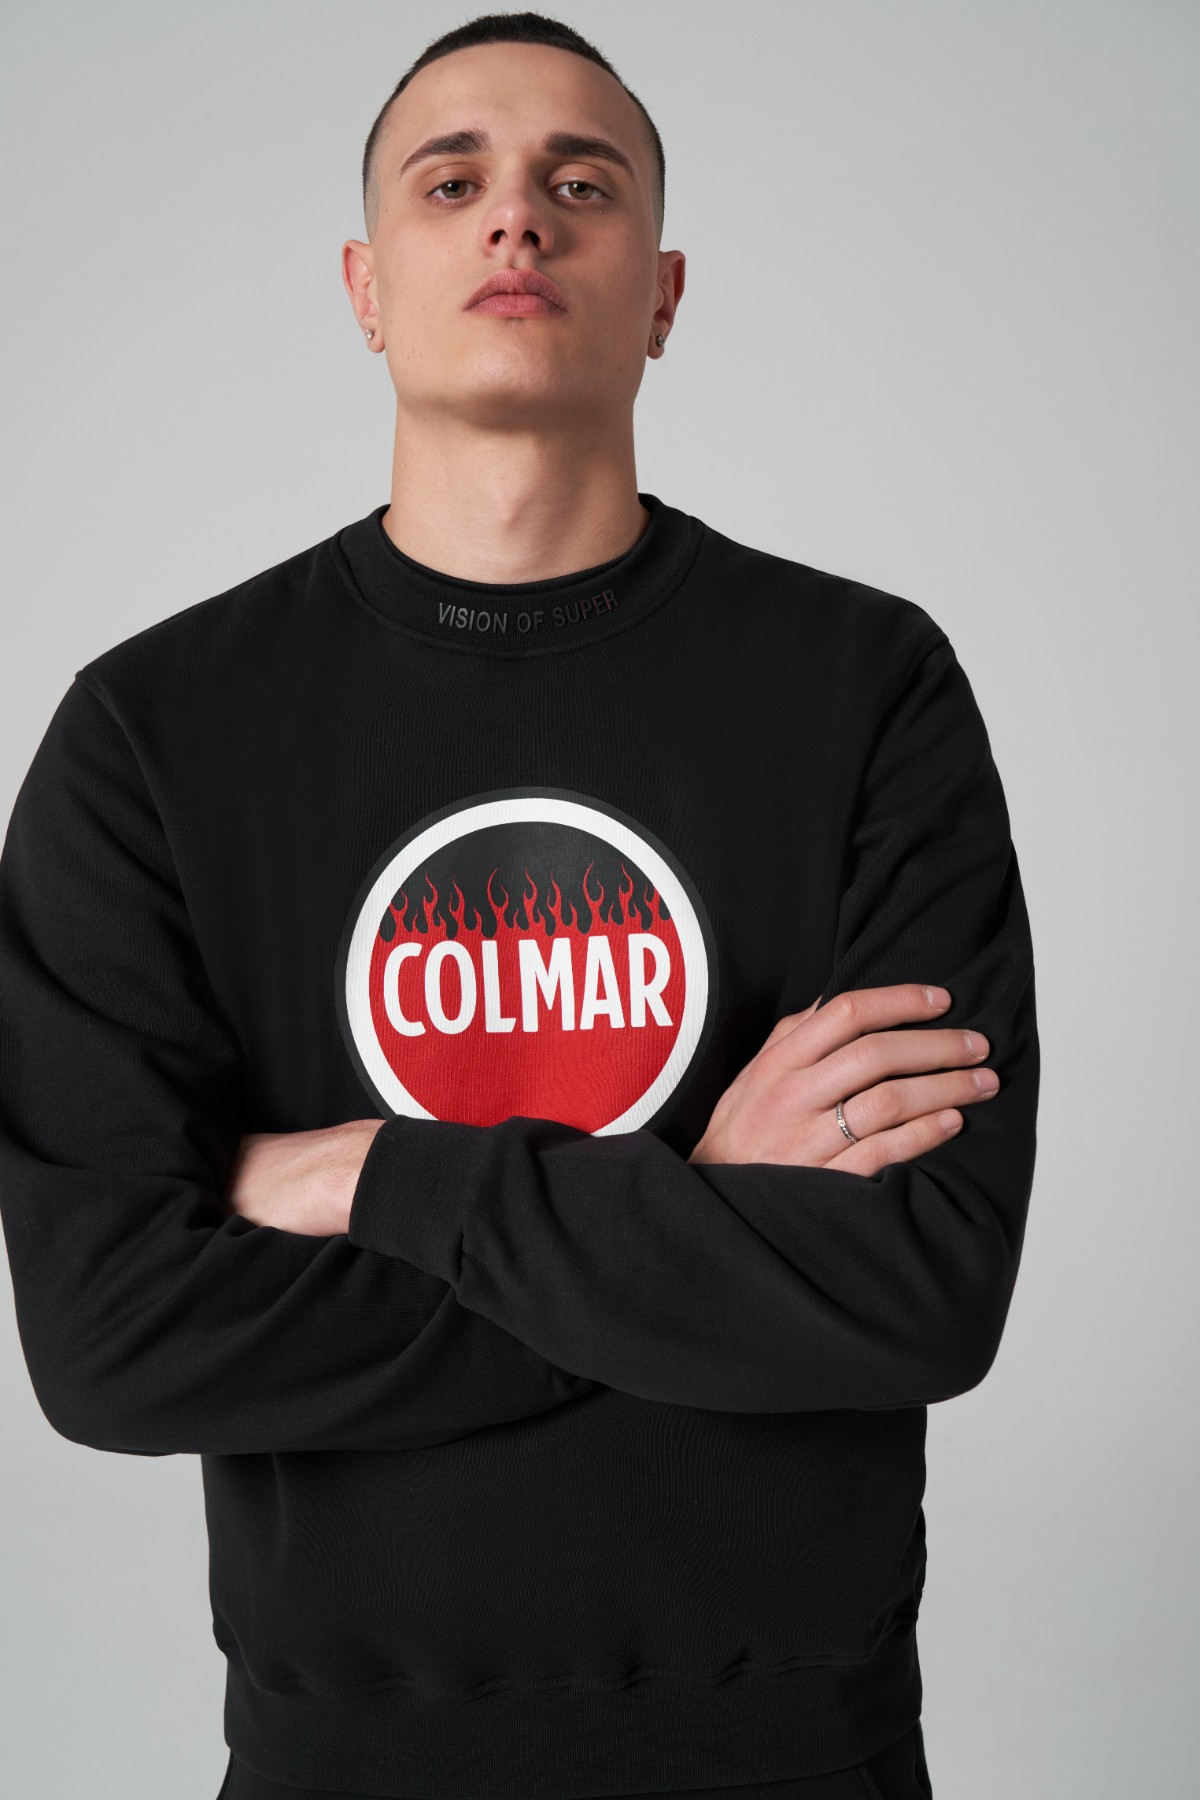 Vision Of Super x Colmar crewneck logo